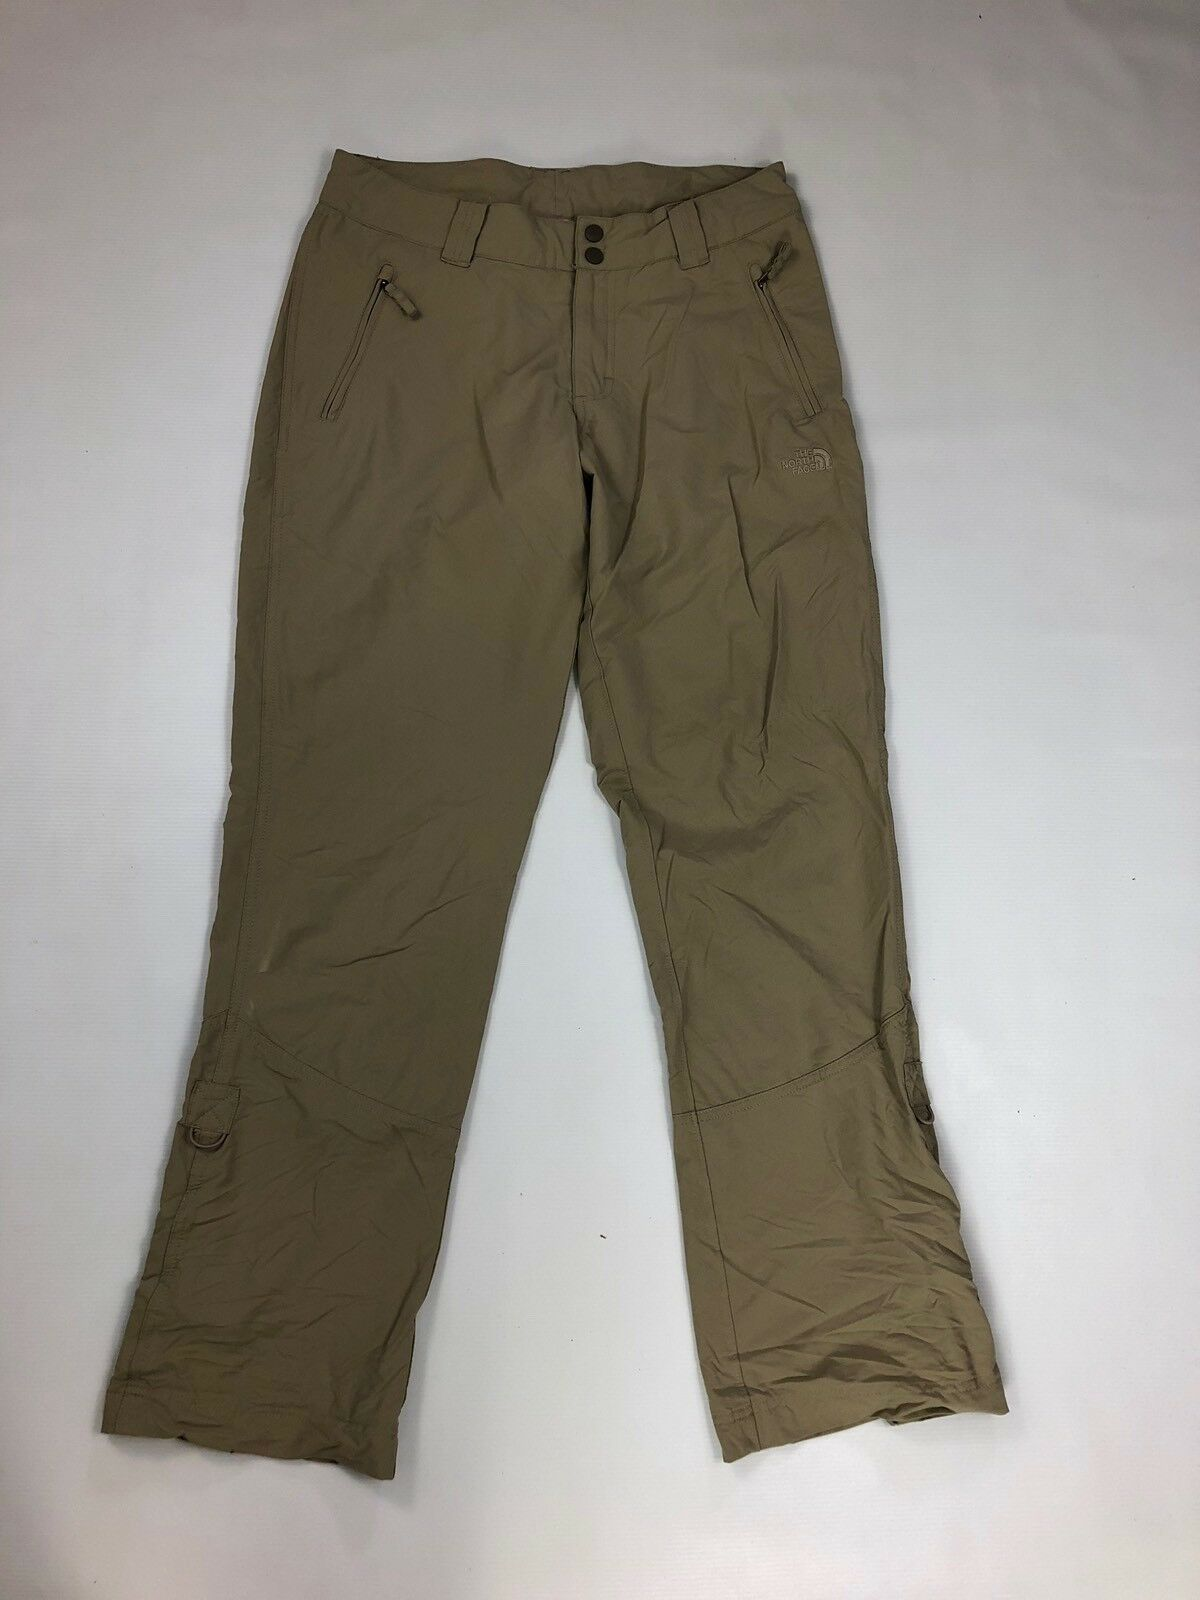 THE NORTH FACE WALKING Trousers - UK12 L32 - Beige - Great Condition - Women's